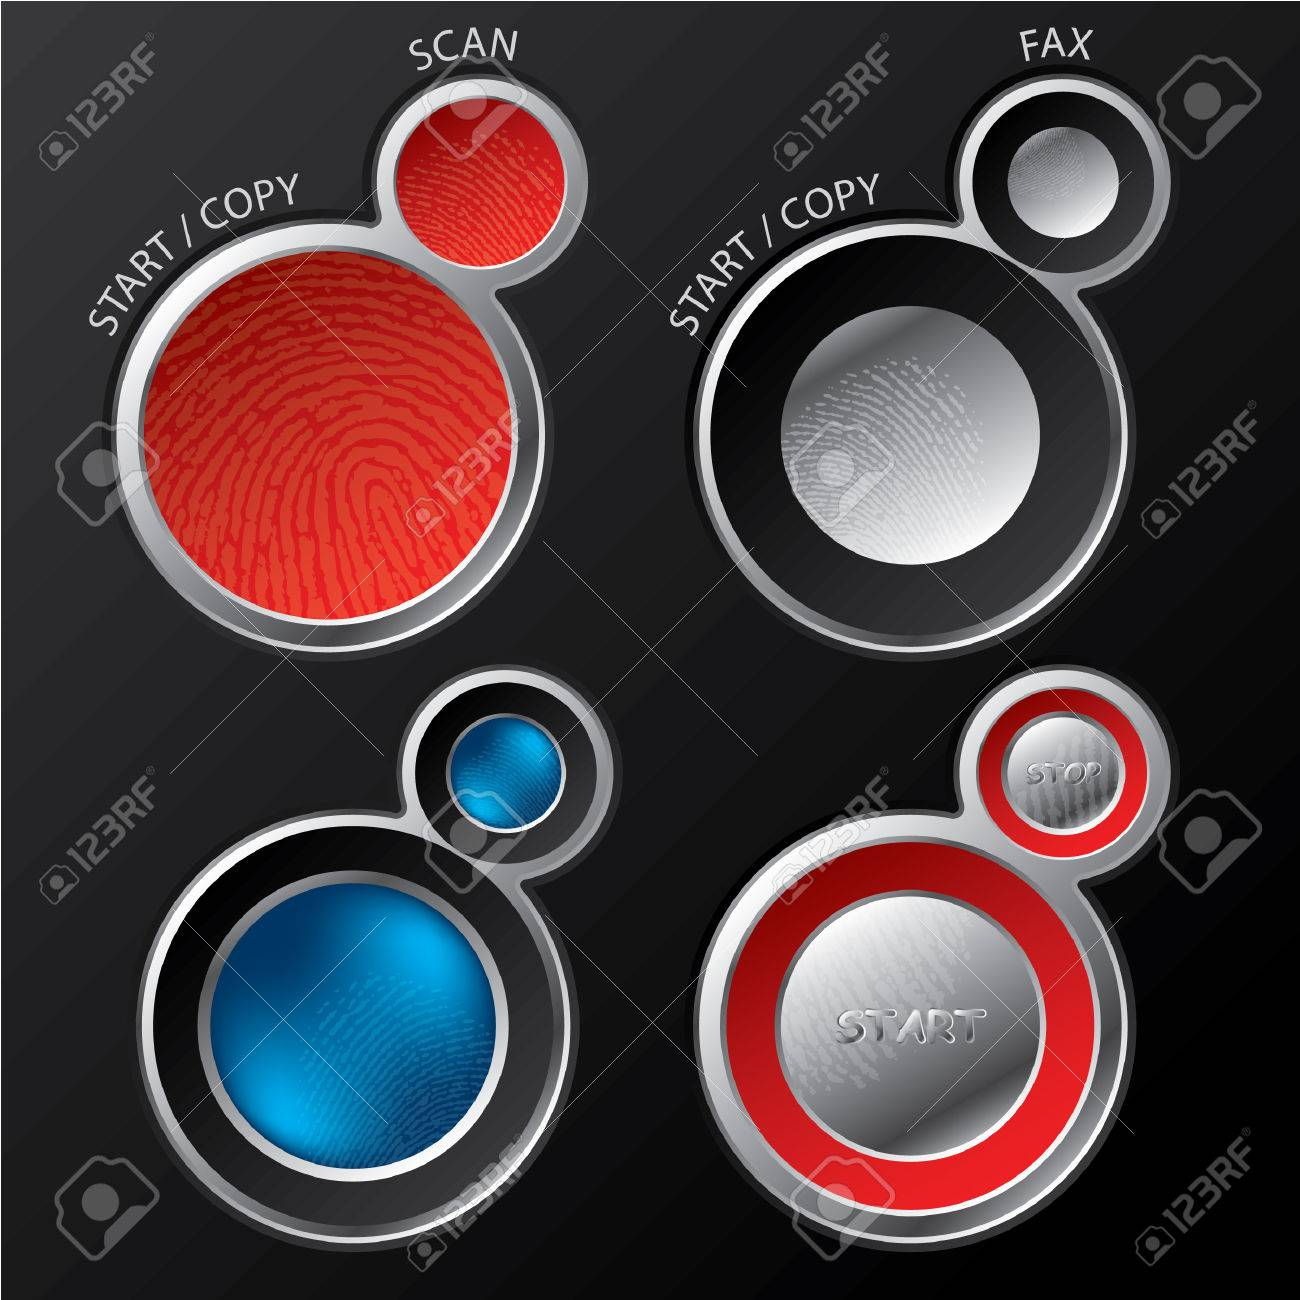 Button sets for scanners/copiers Stock Vector - 8599133